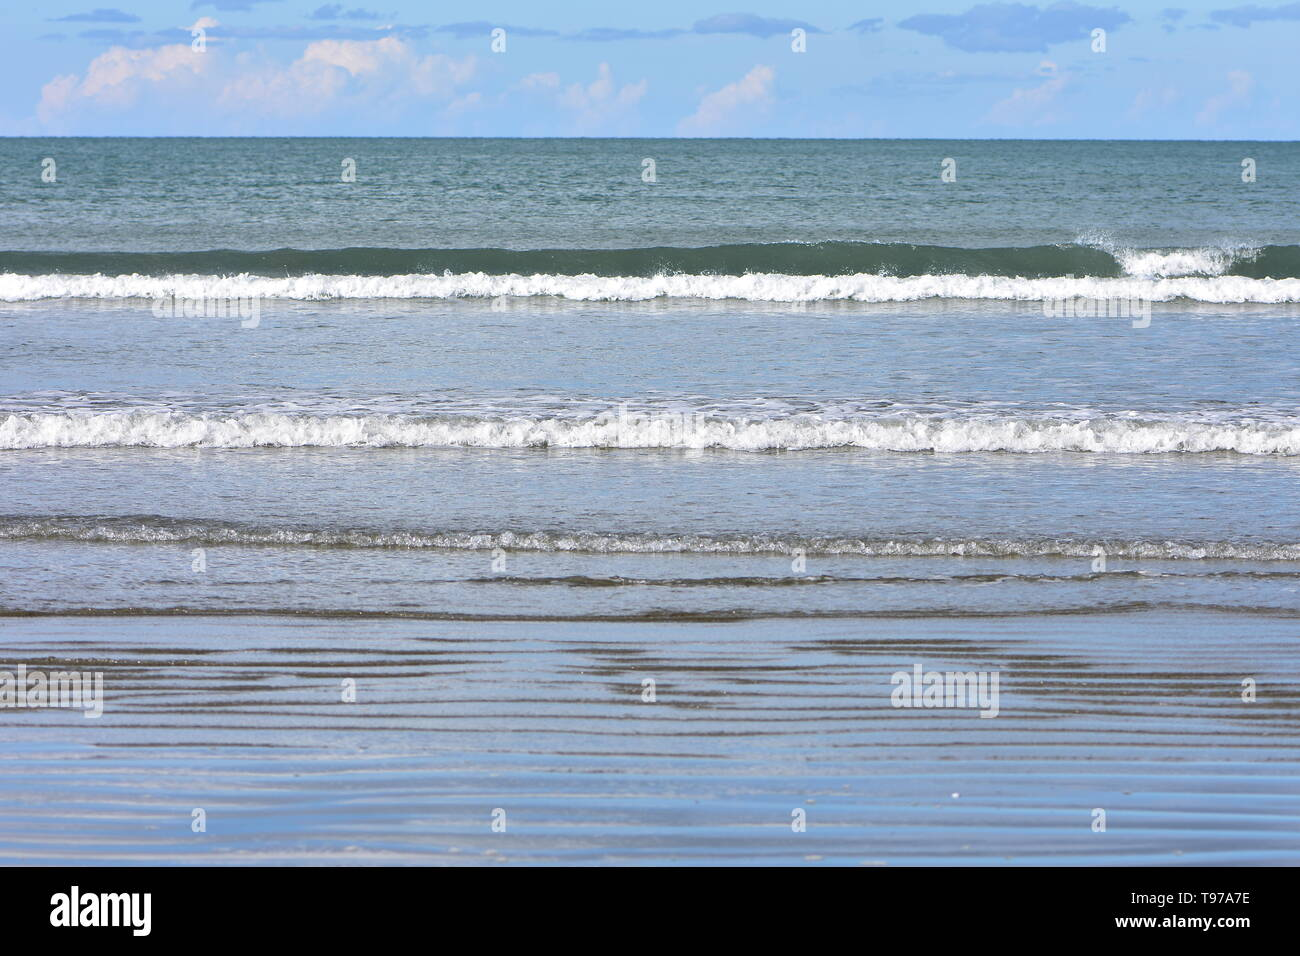 Rows of tiny surf waves rolling from calm ocean to flat sandy beach. - Stock Image